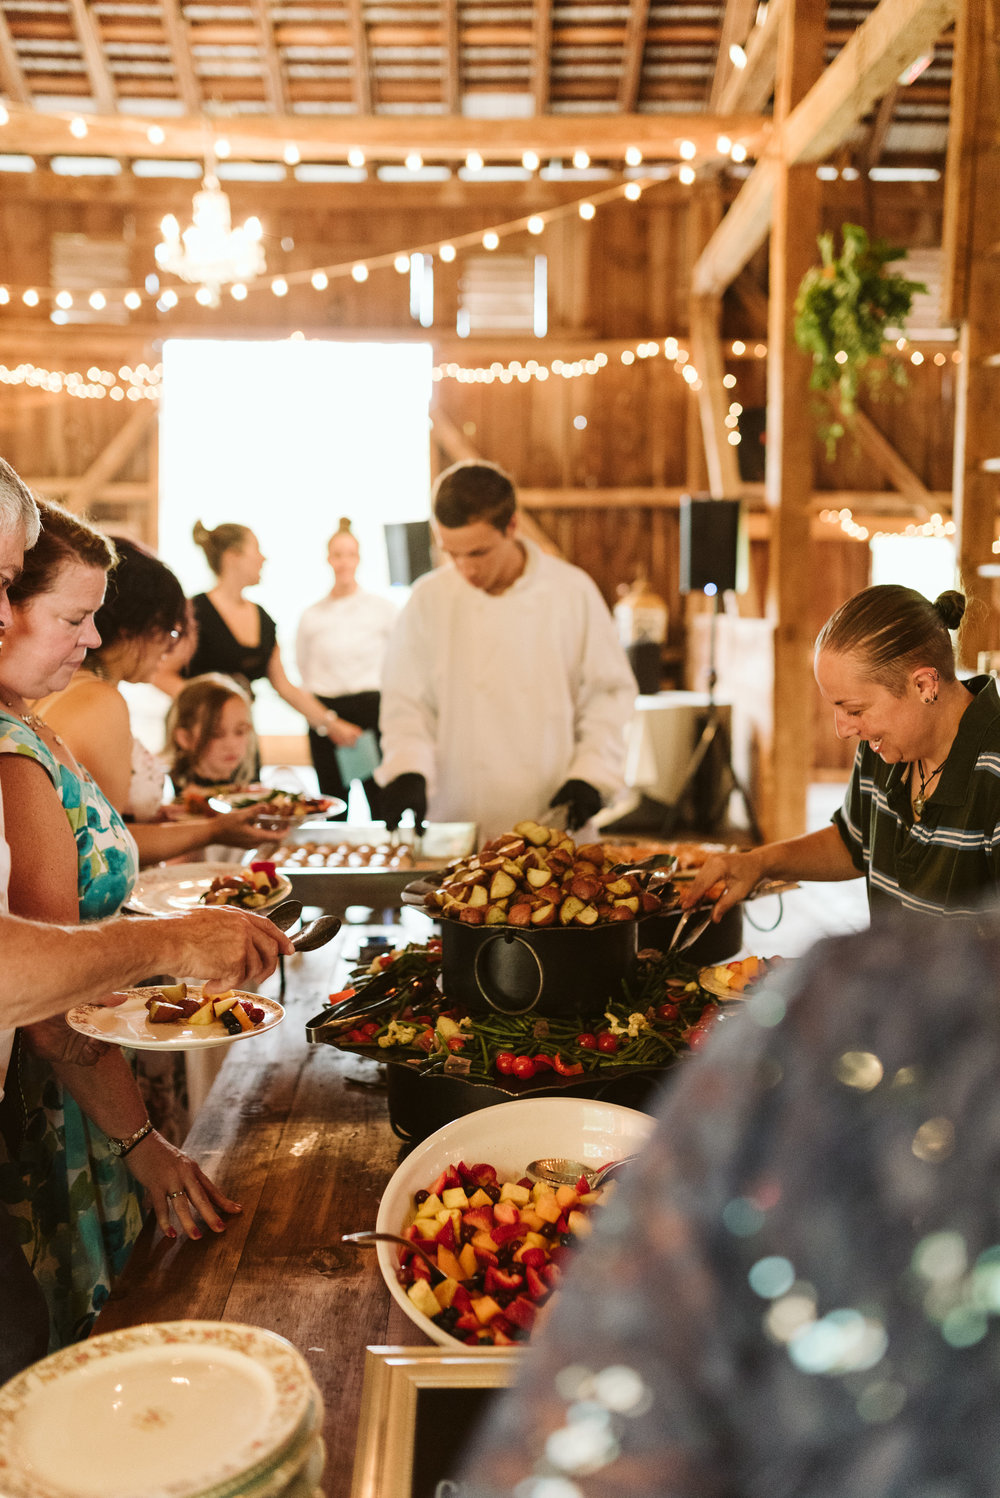 Rocklands Farm, Maryland, Intimate Wedding, Baltimore Wedding Photographer, Sungold Flower Co, Rustic, Romantic, Barn Wedding, Buffet at Reception, Wedding Food